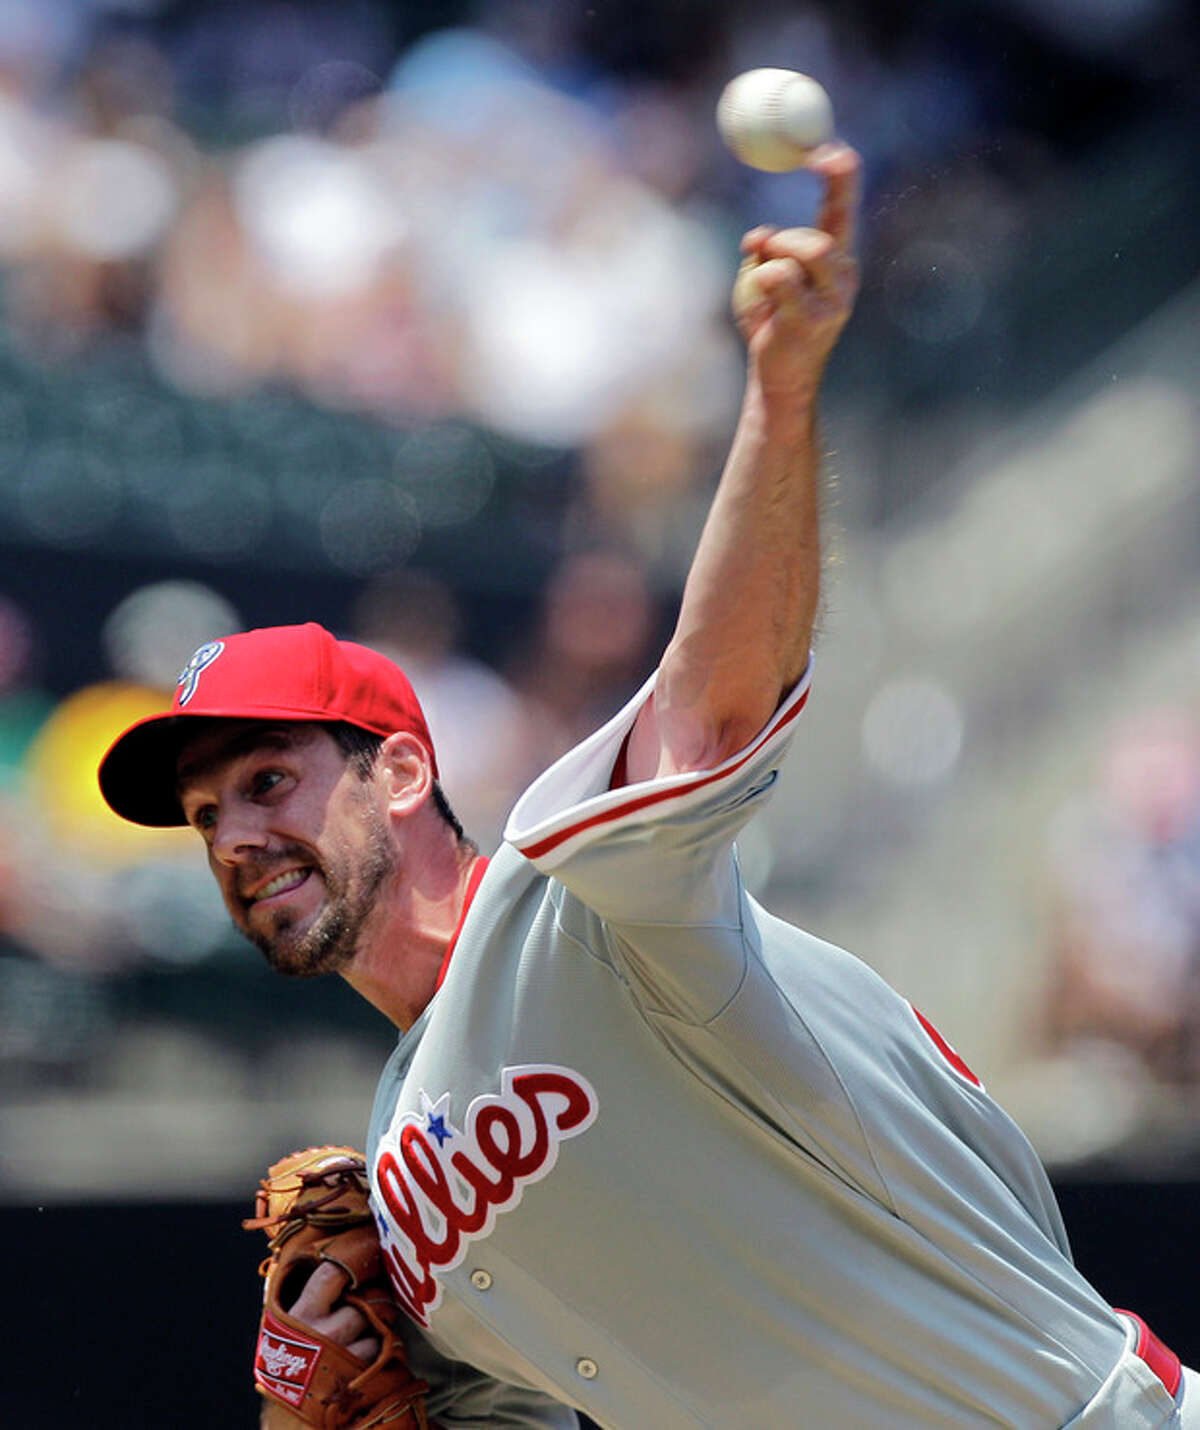 Philadelphia Phillies starting pitcher Cliff Lee delivers against the New York Mets during the third inning of their baseball game at Citi Field in New York, Wednesday, July 4, 2012. (AP Photo/Kathy Willens)